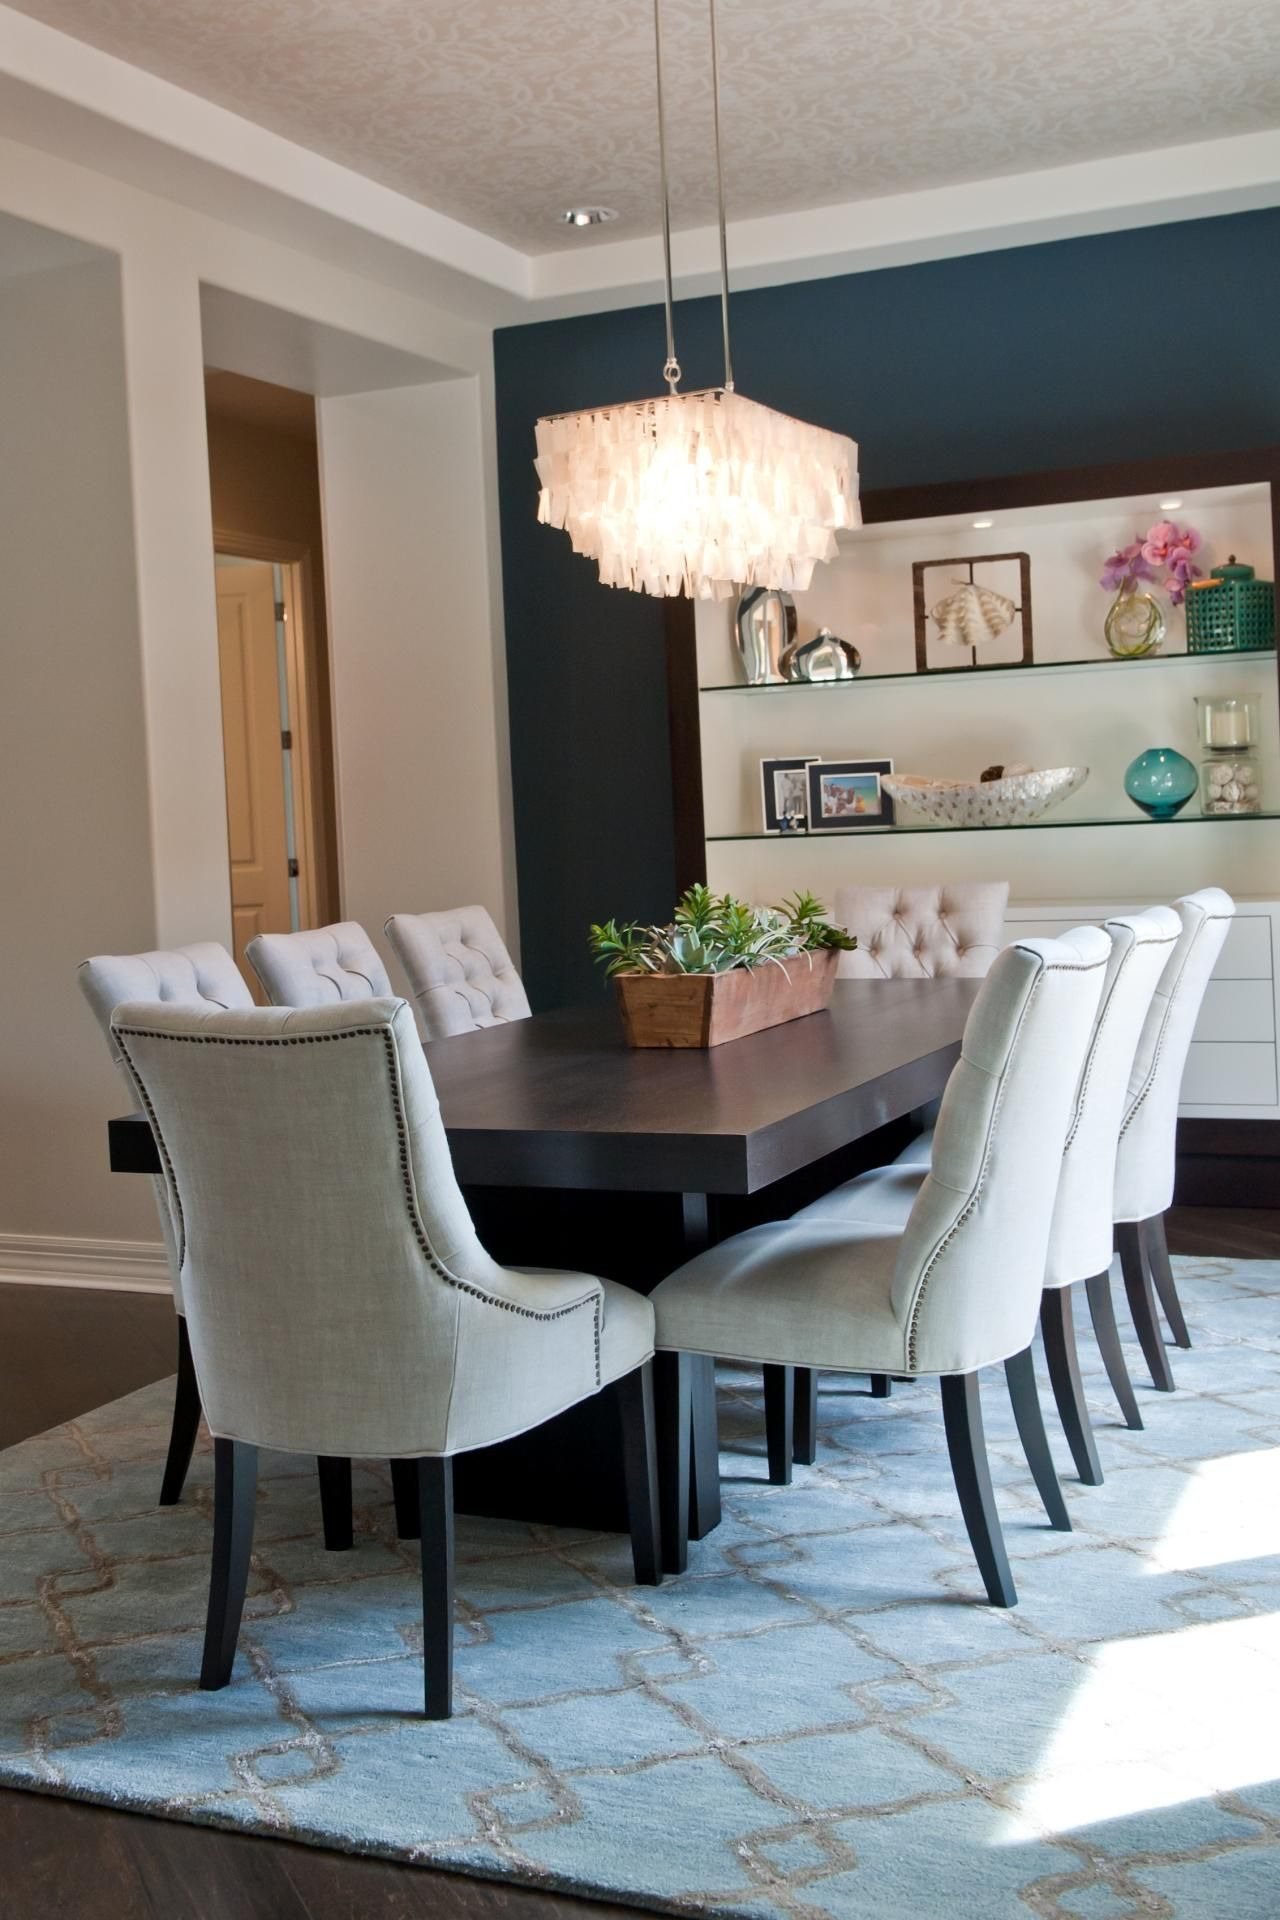 Eight Off White Tufted Chairs Surround A Dark Wood Table In This Chic Transitional  Dining Room. A Dark Blue Accent Wall Attracts The Eye To The Built In ...